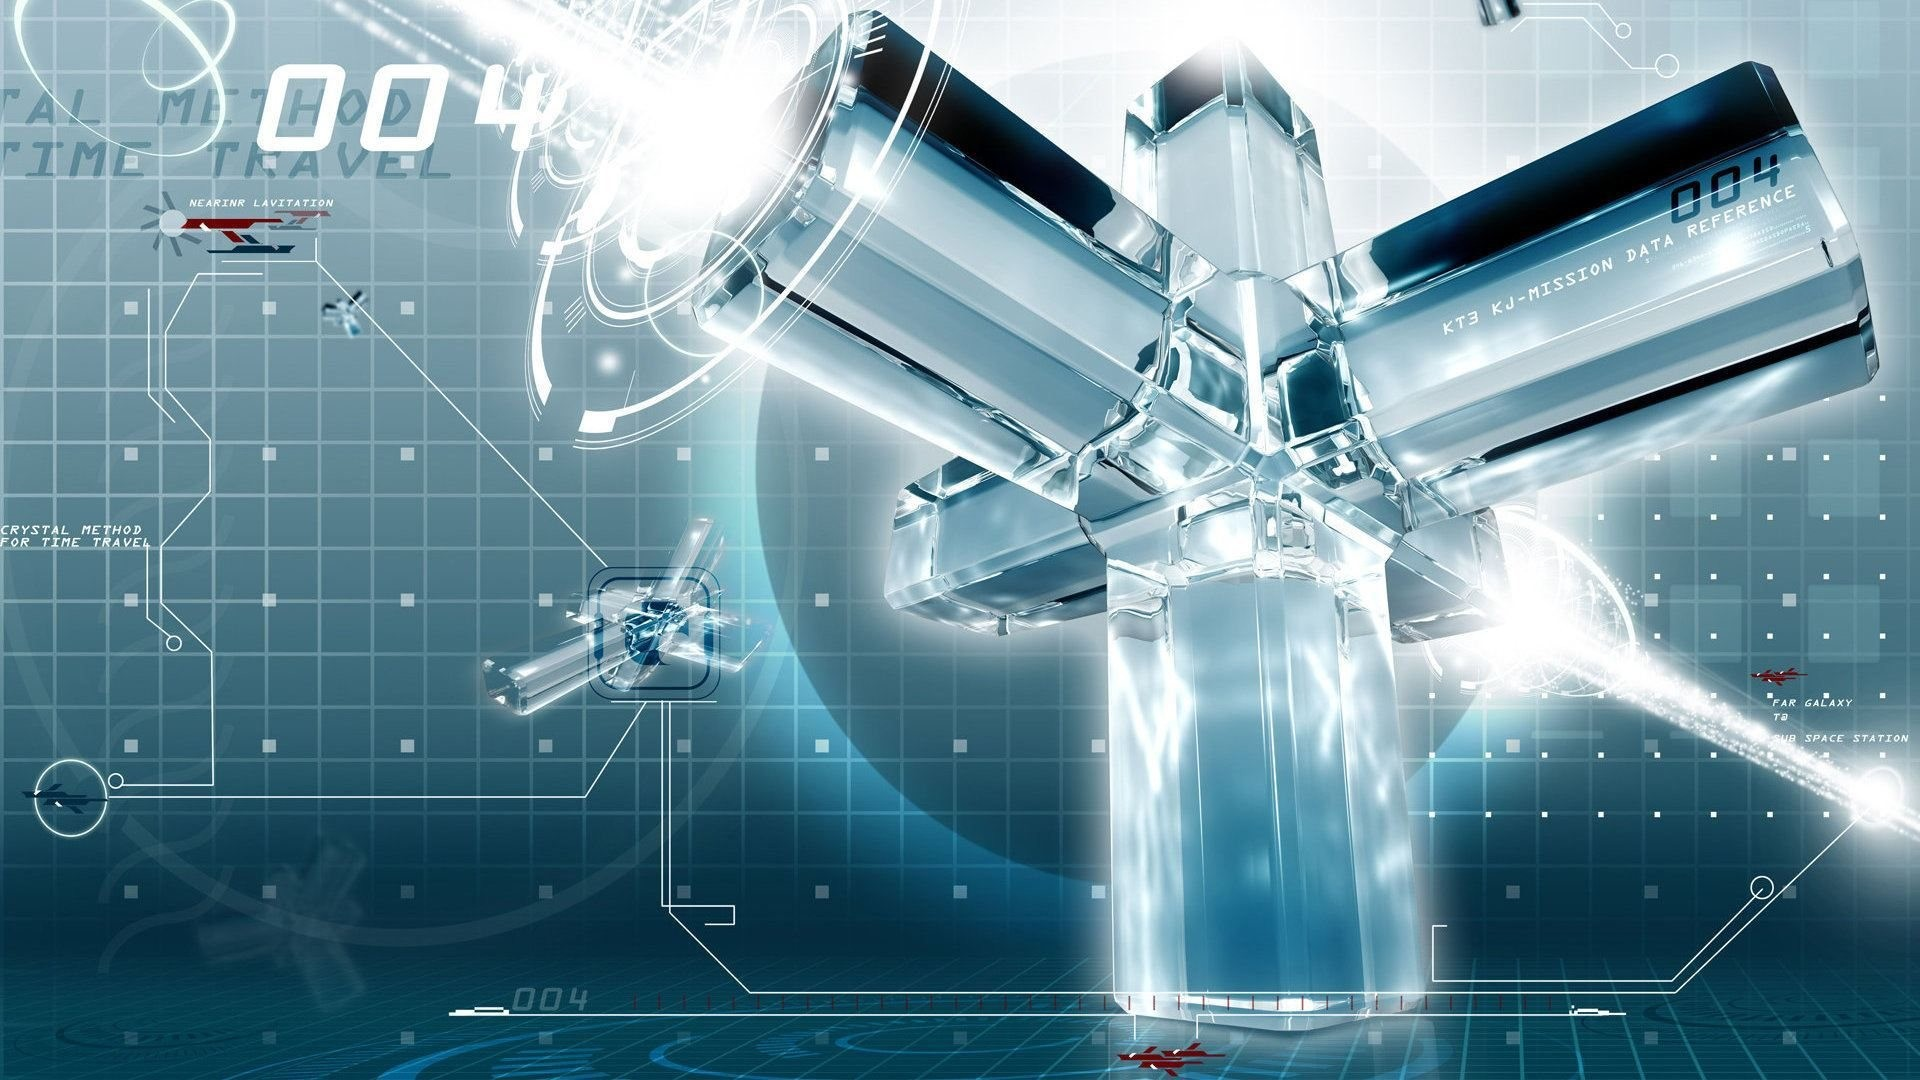 Best 20+ Technology wallpaper ideas on Pinterest   Tron legacy, Technology  background and Android technology